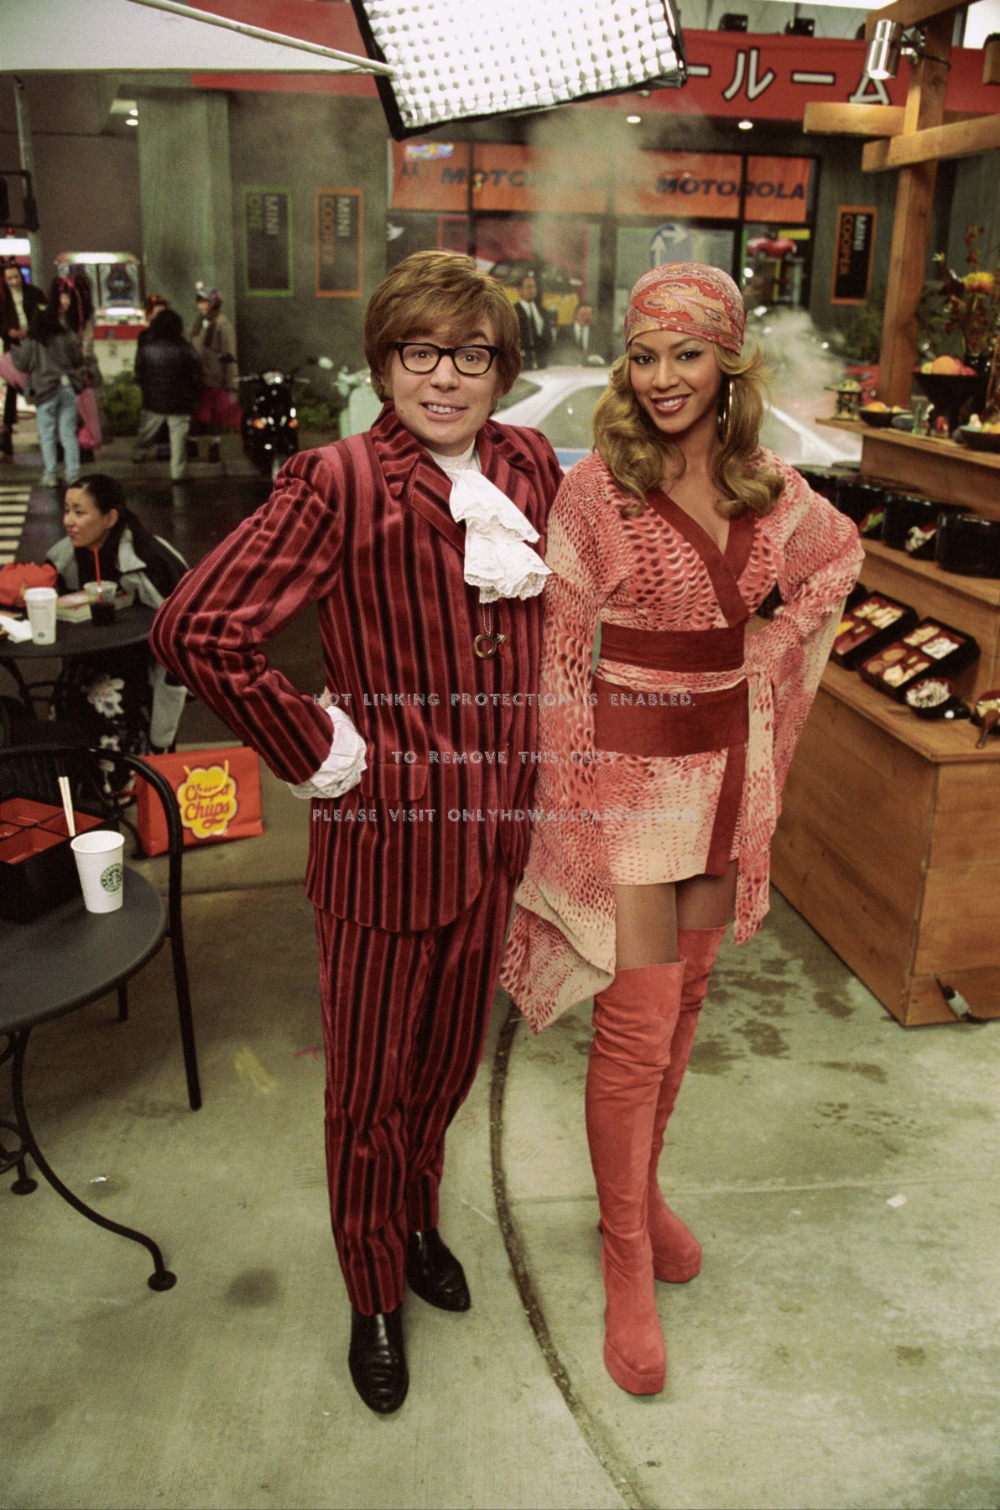 Austin Powers Wallpaper Hd Wallpapers Backgrounds Austin Powers Costume Disco Outfit 70s Inspired Fashion